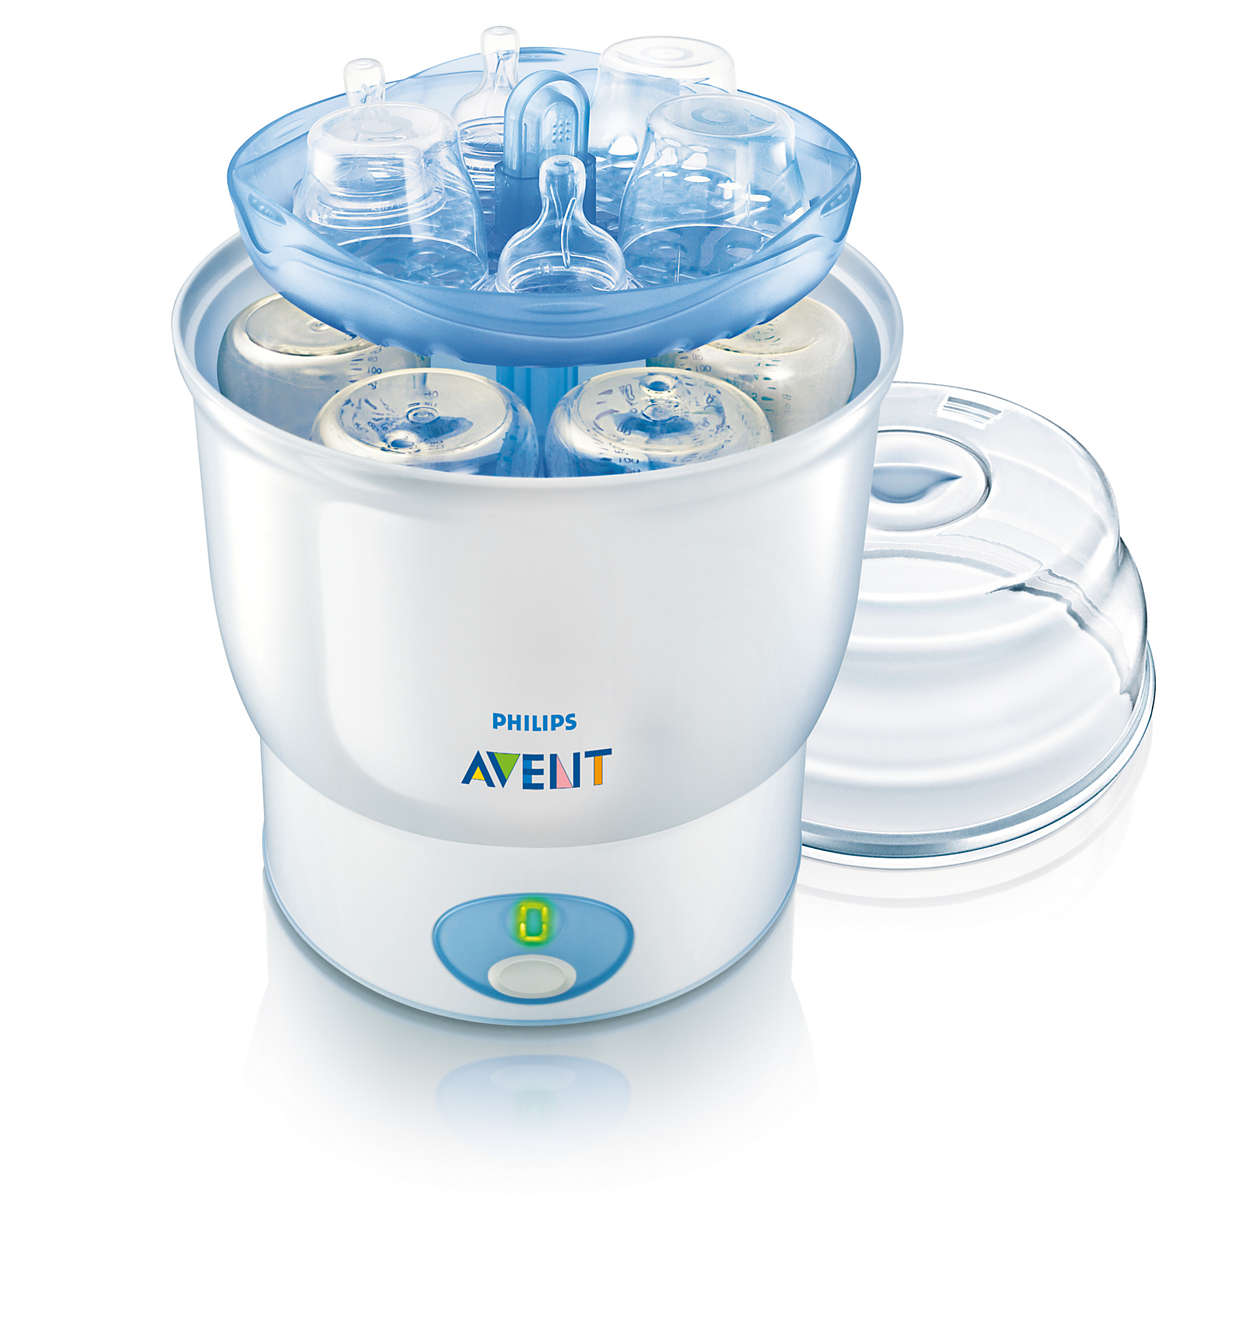 philips avent steriliser instructions